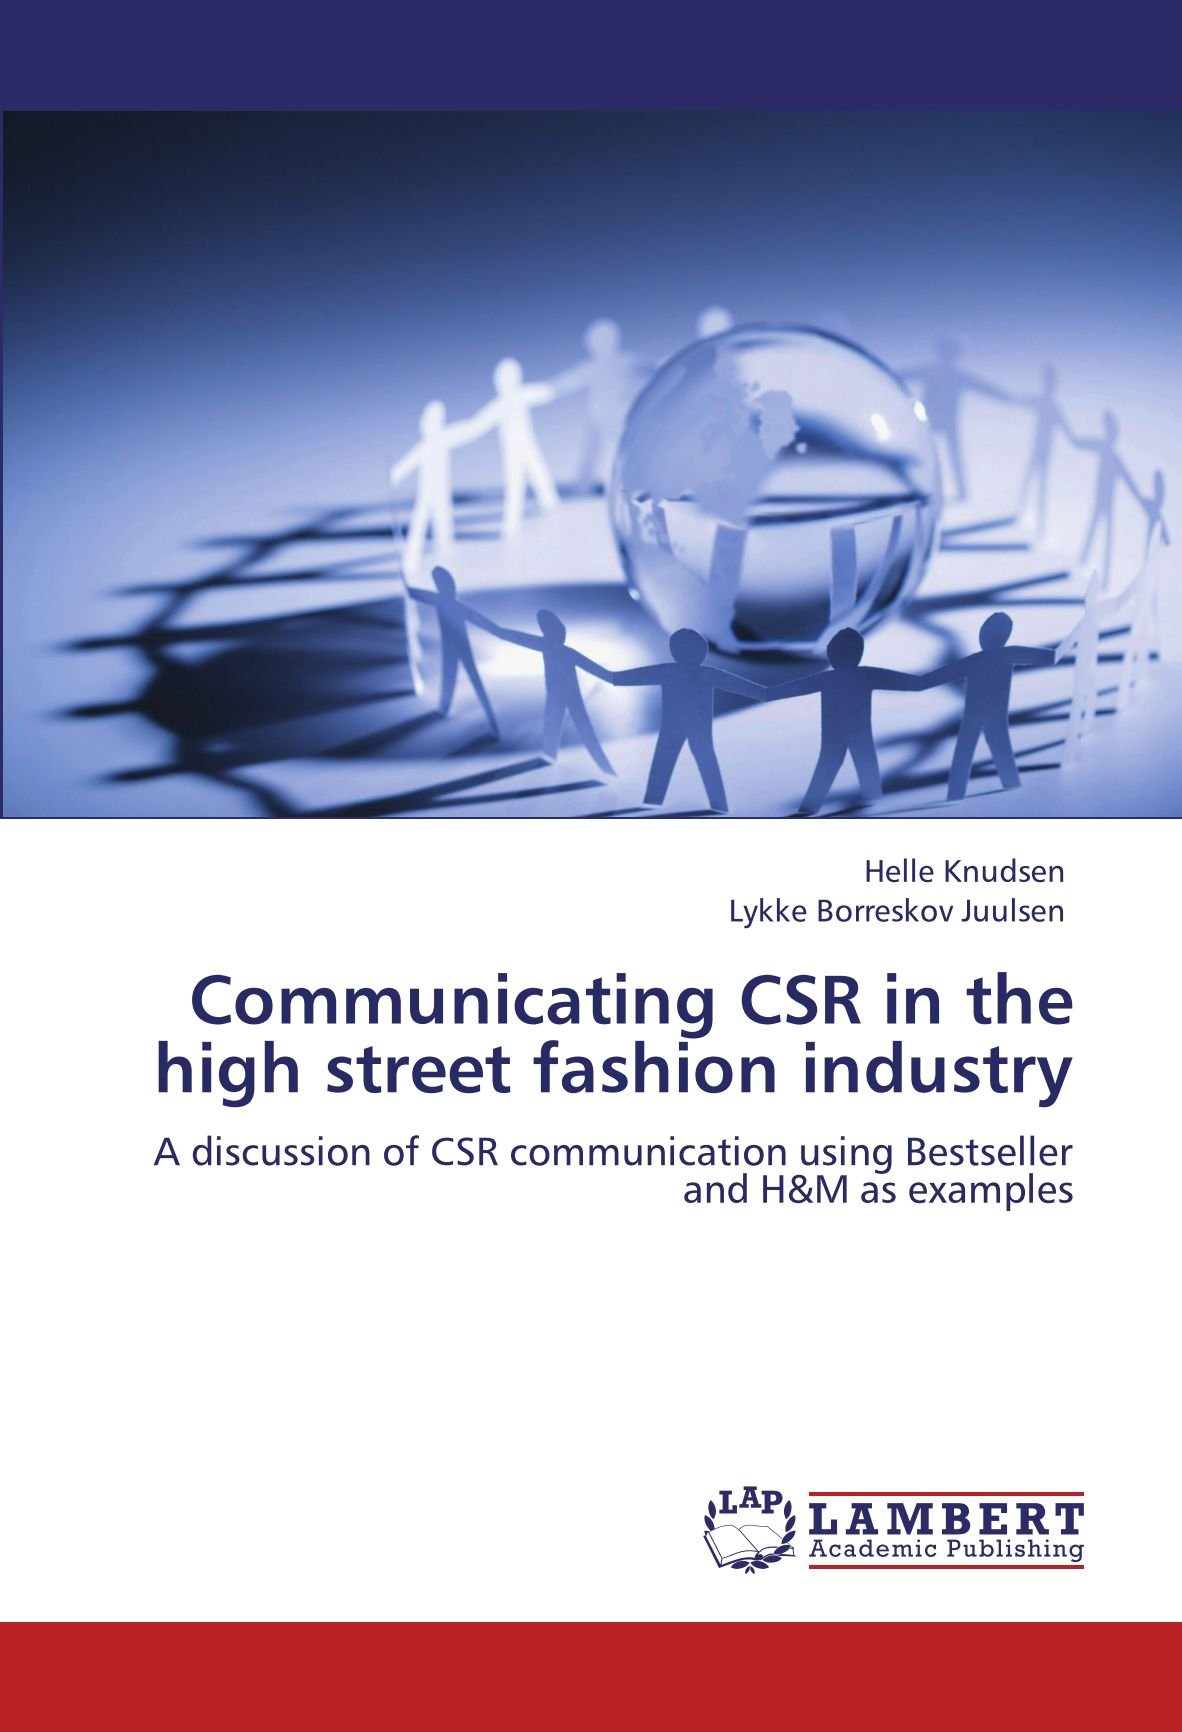 Communicating CSR in the high street fashion industry: A discussion of CSR communication using Bestseller and H&M as examples ebook